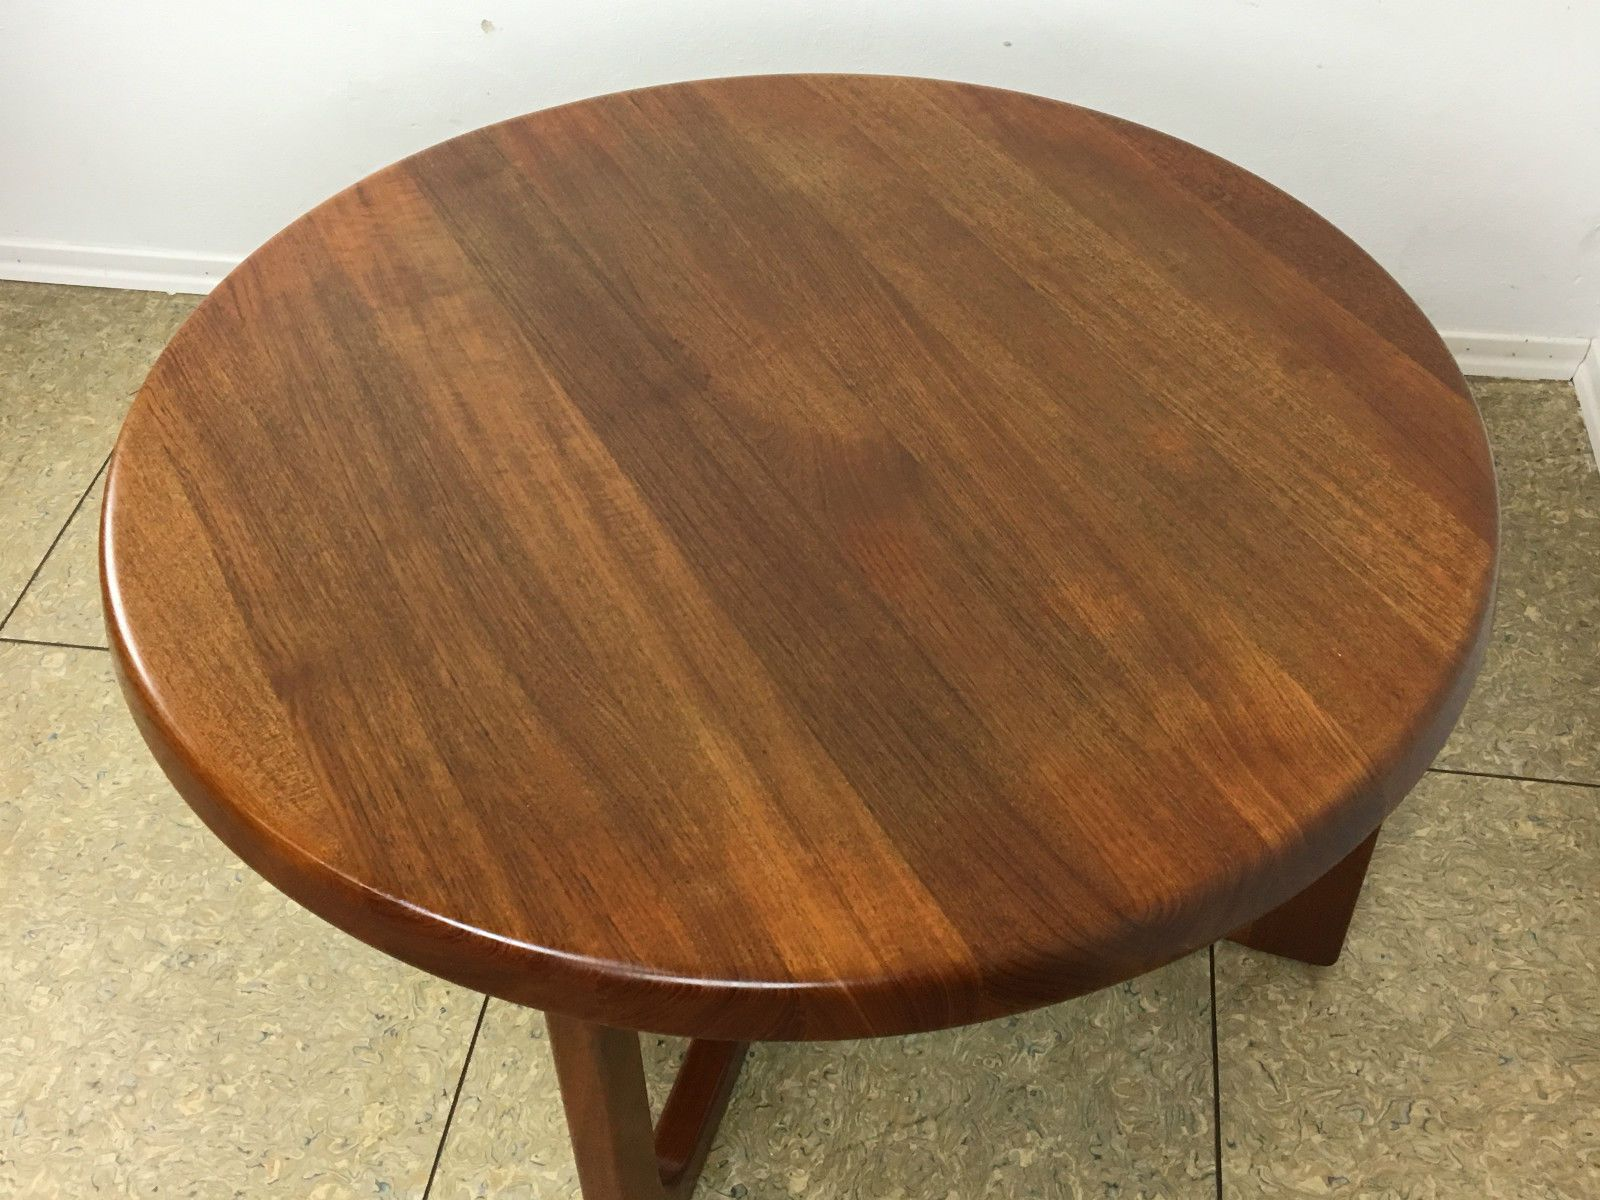 Round Teak Coffee Table By Niels Bach 1970s For Sale At Pamono